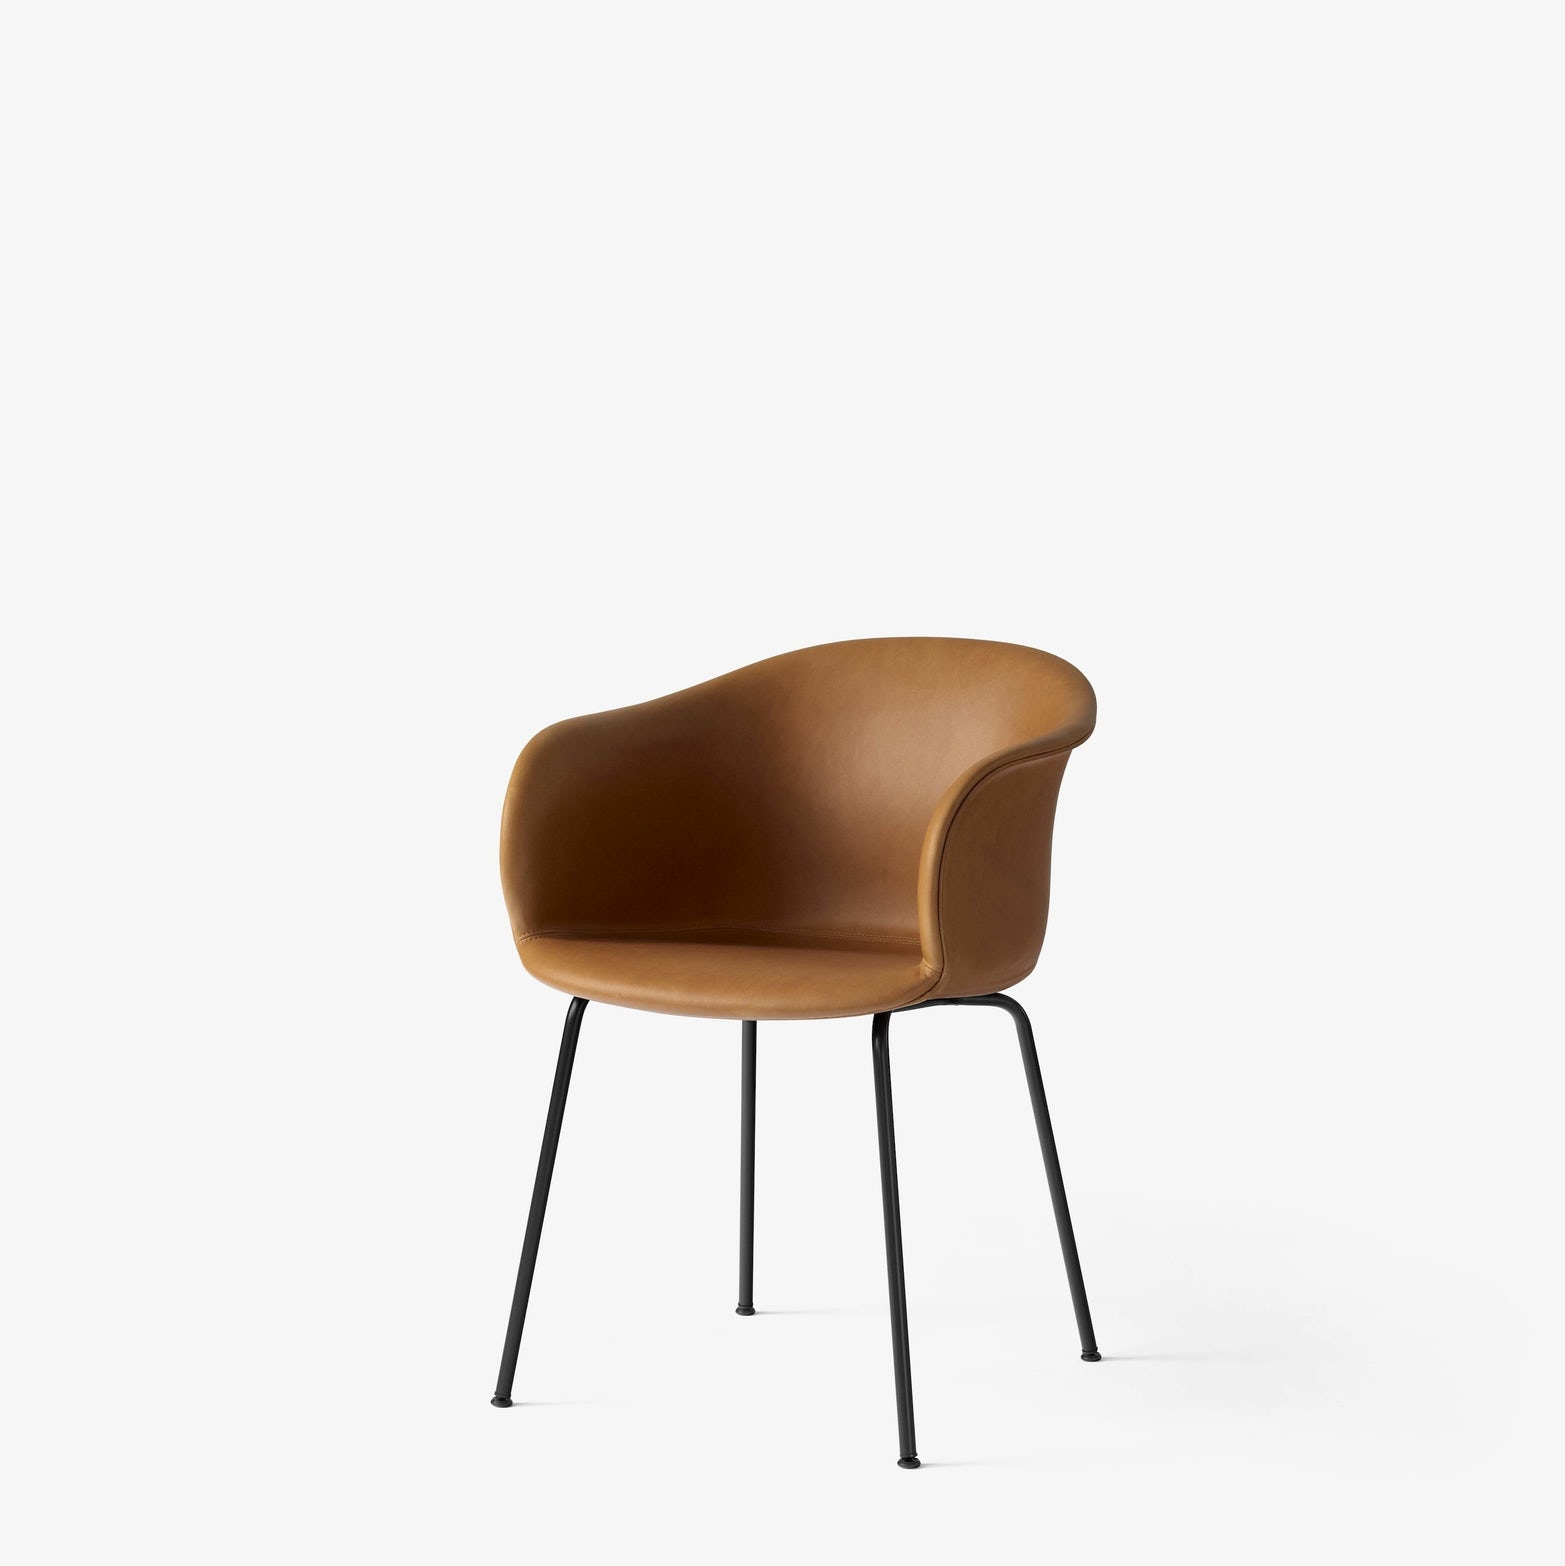 Elefy jh29 chair jaime hayon andtradition 7